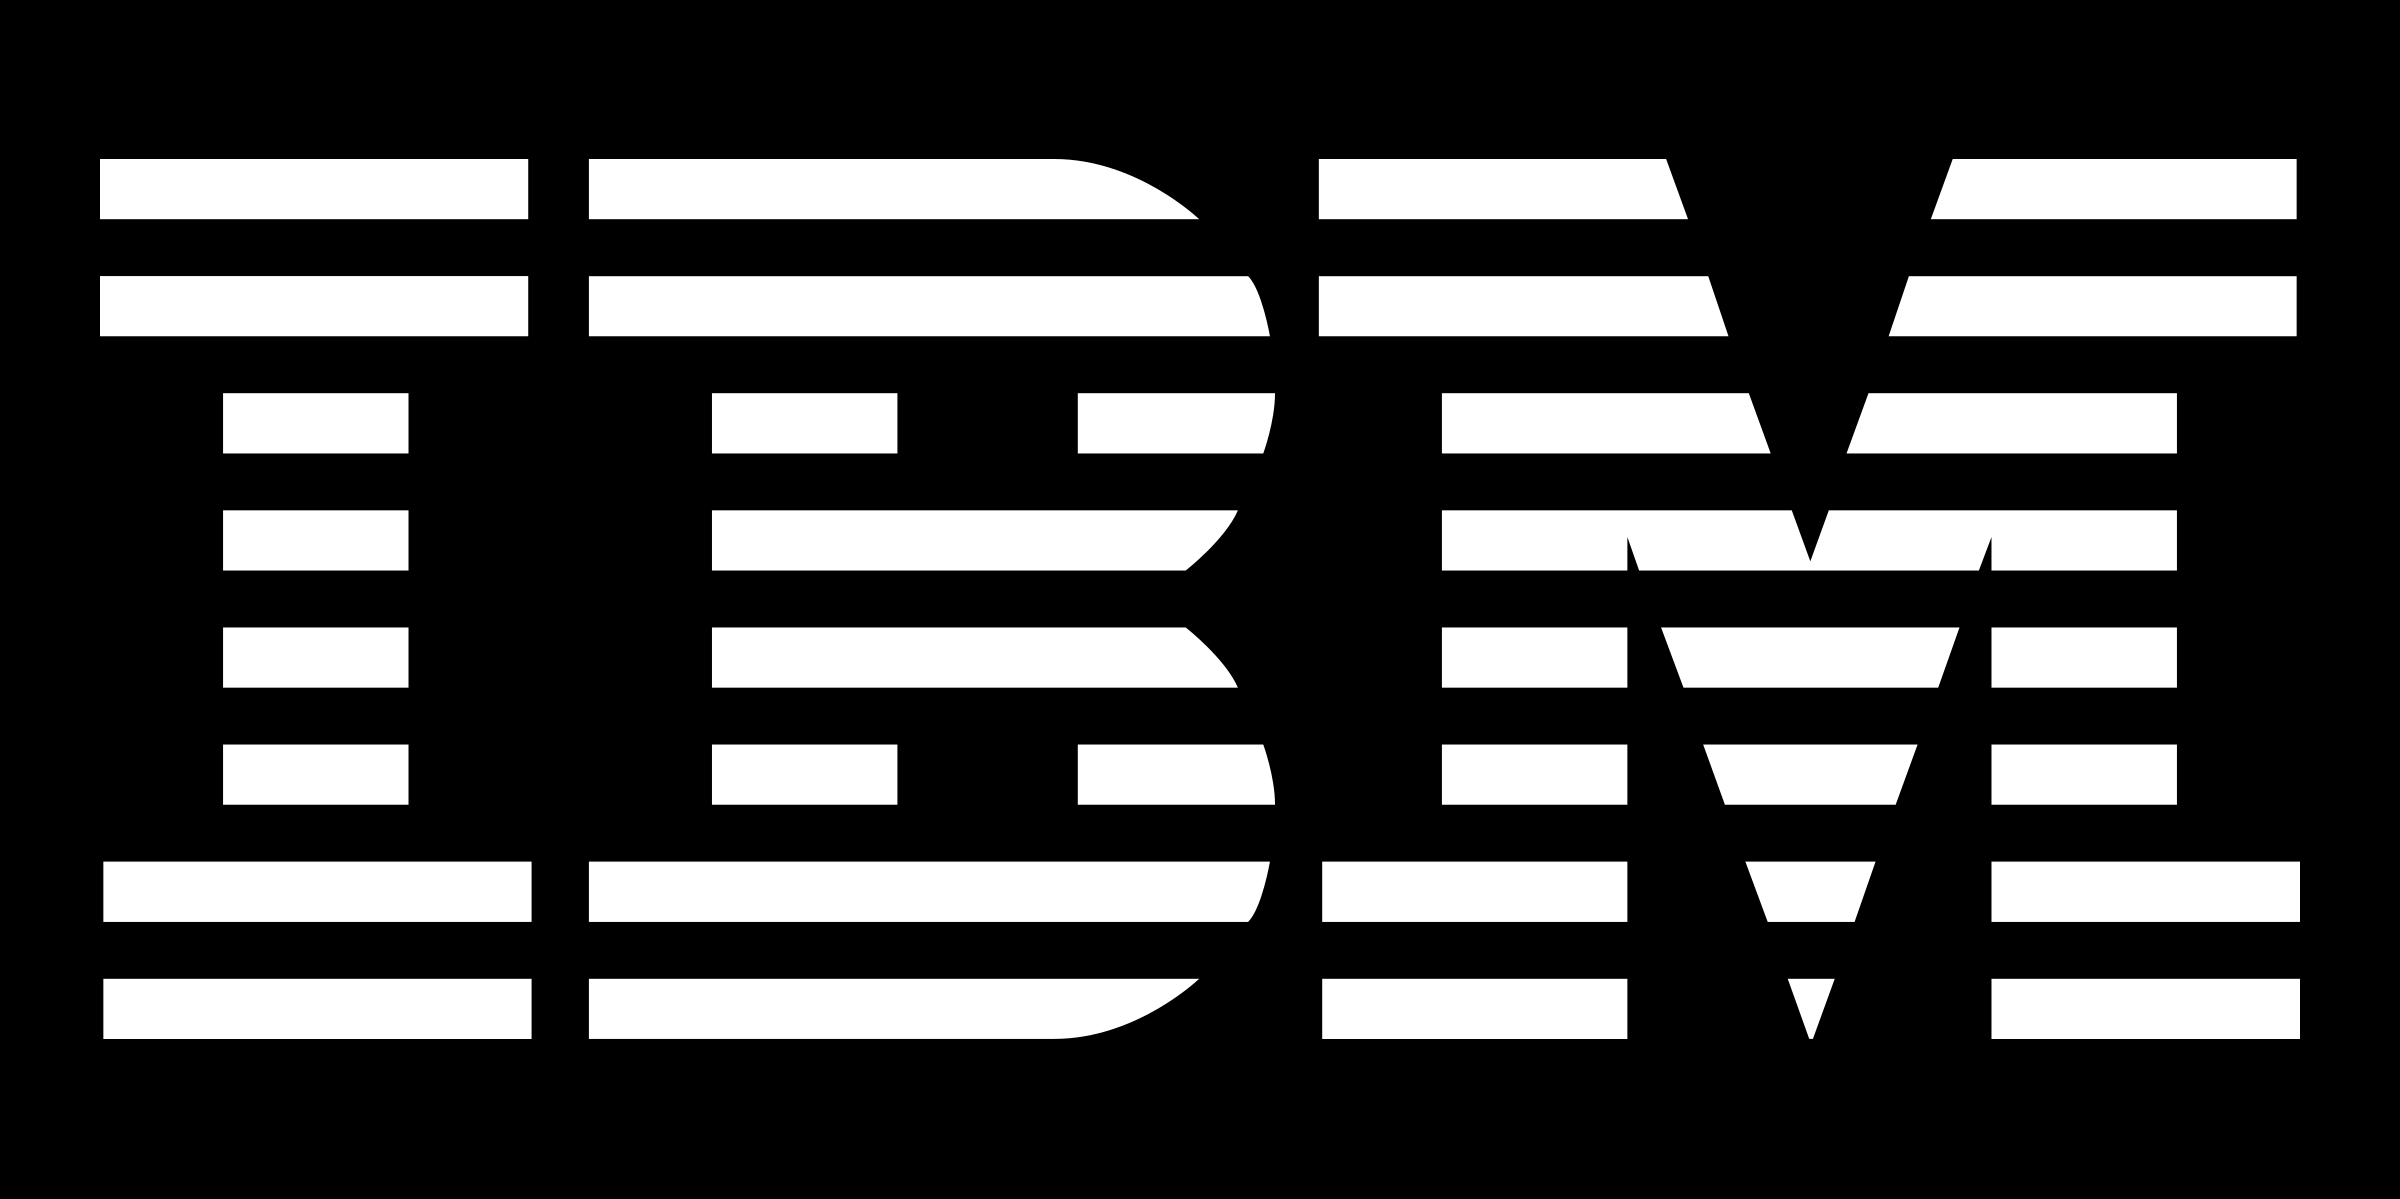 ibm logo png transparent amp svg vector freebie supply